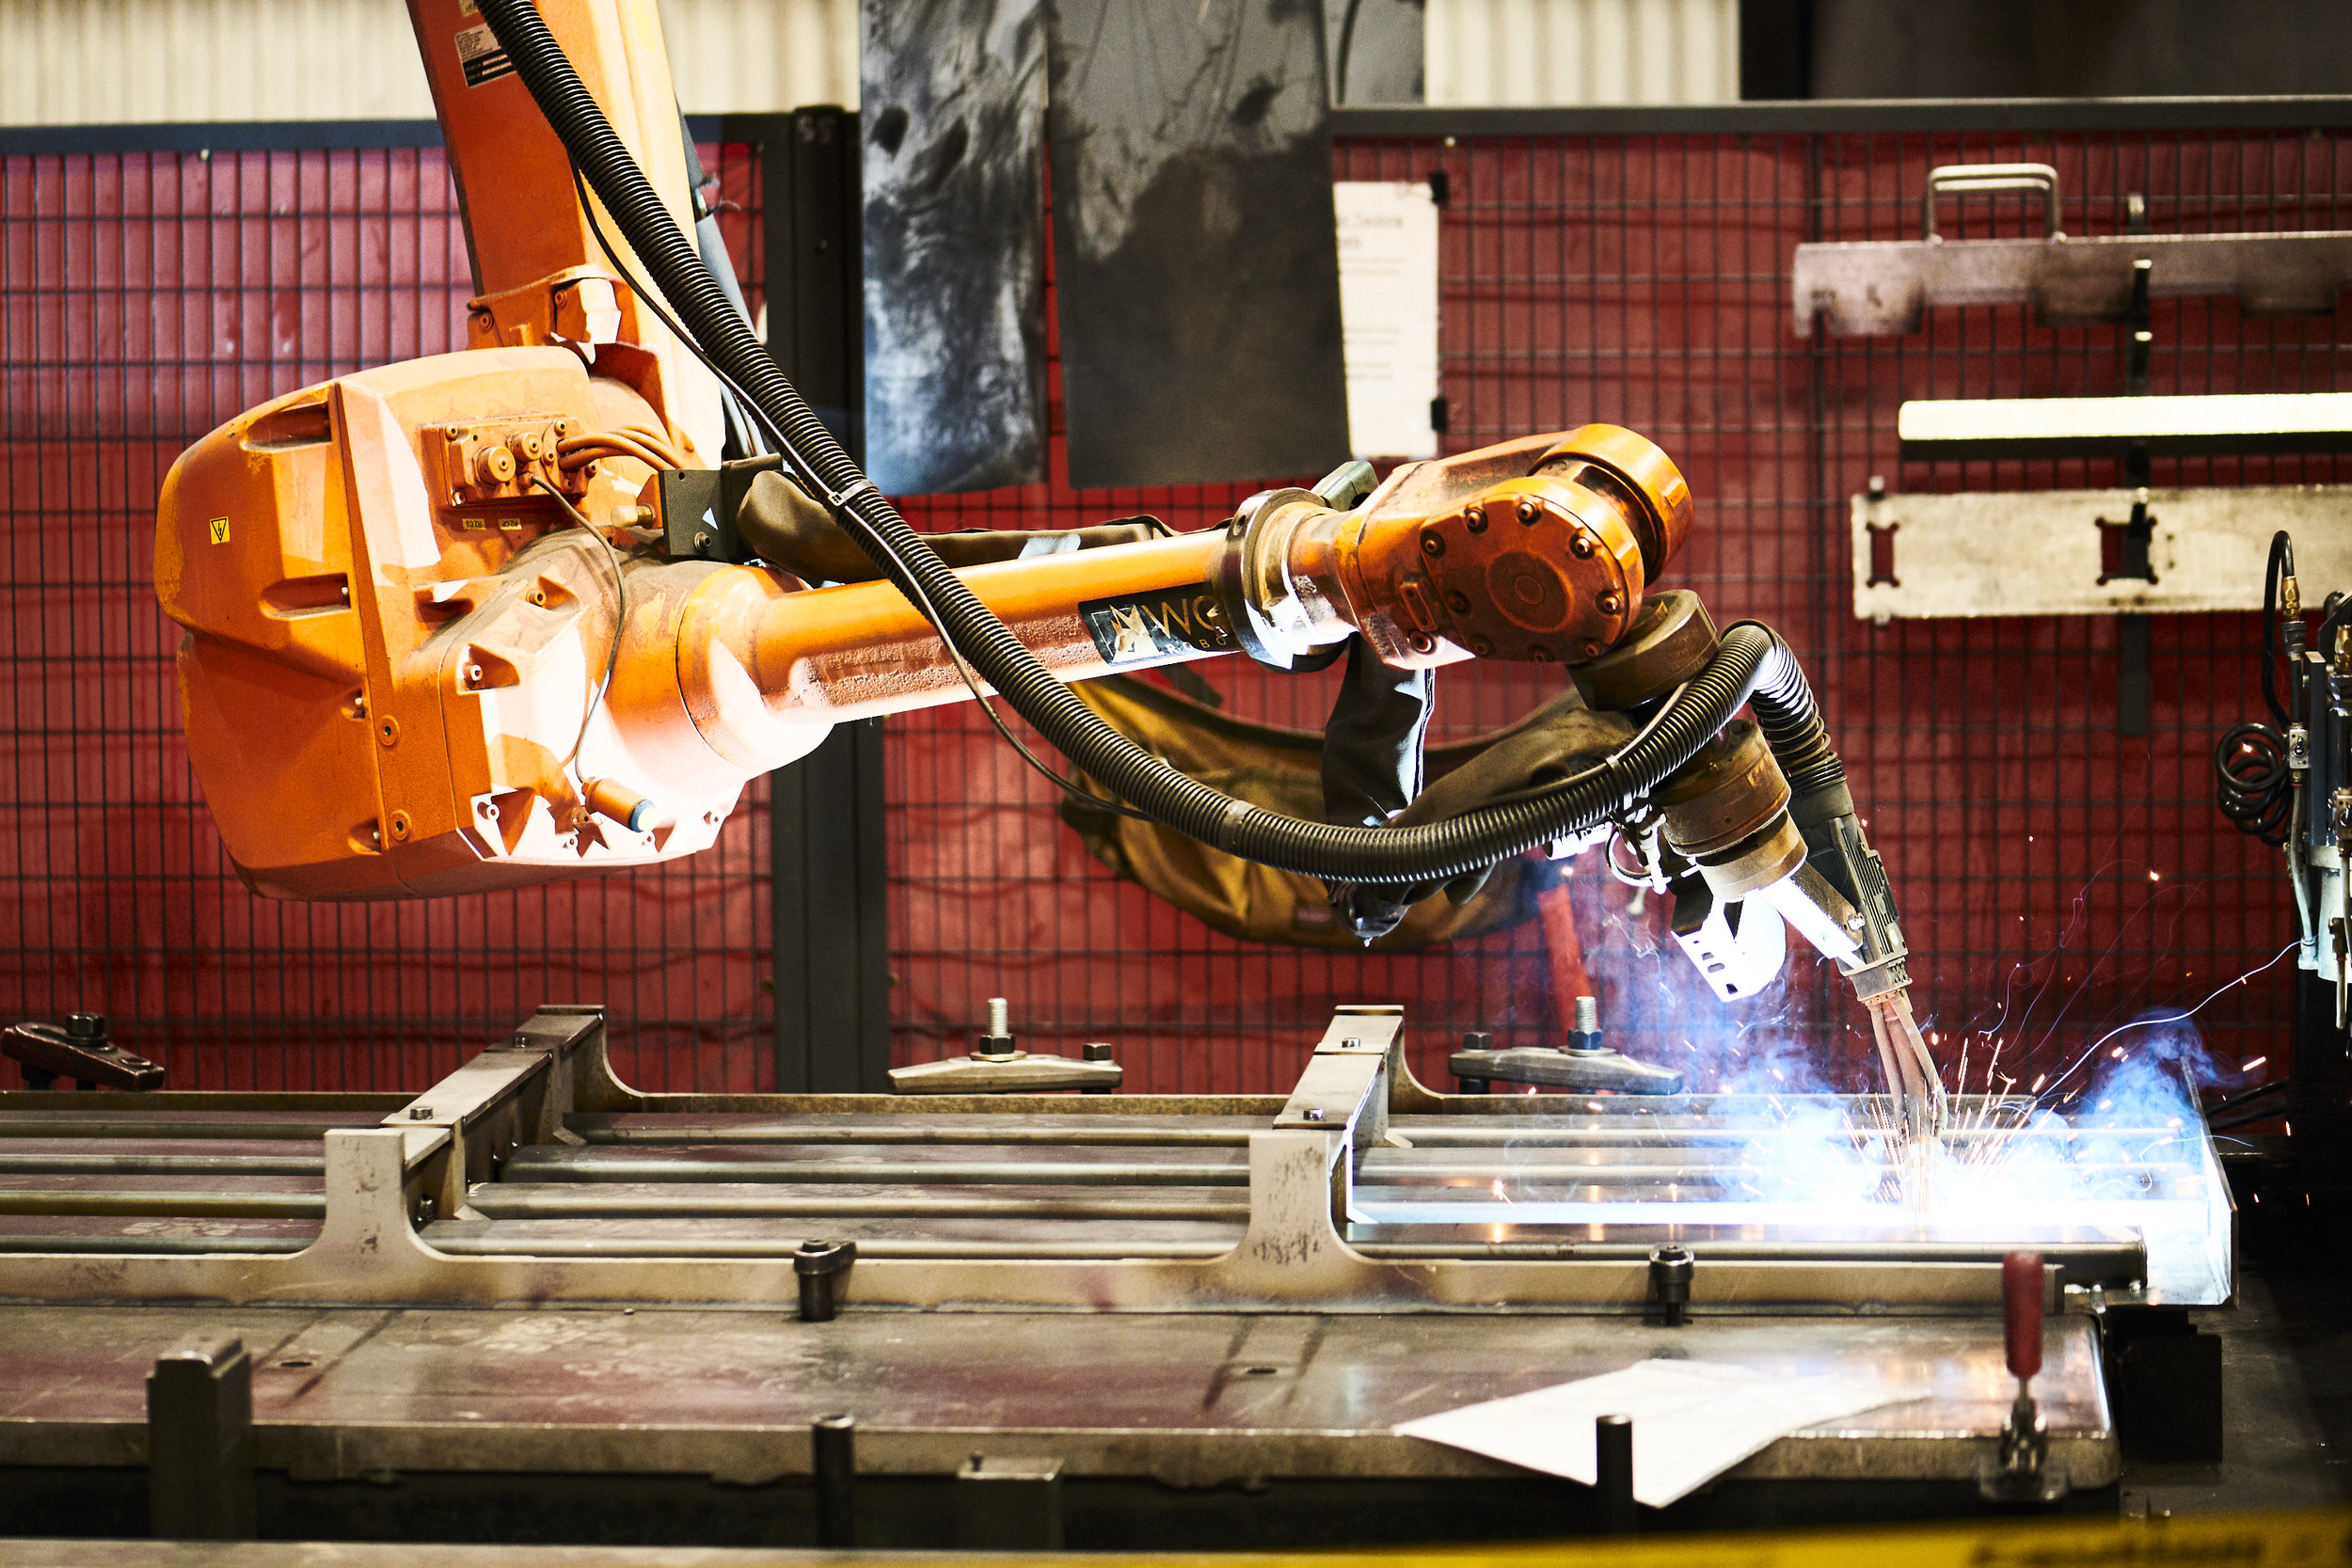 Major Tool & Machine Robotic Welding and Fabrication